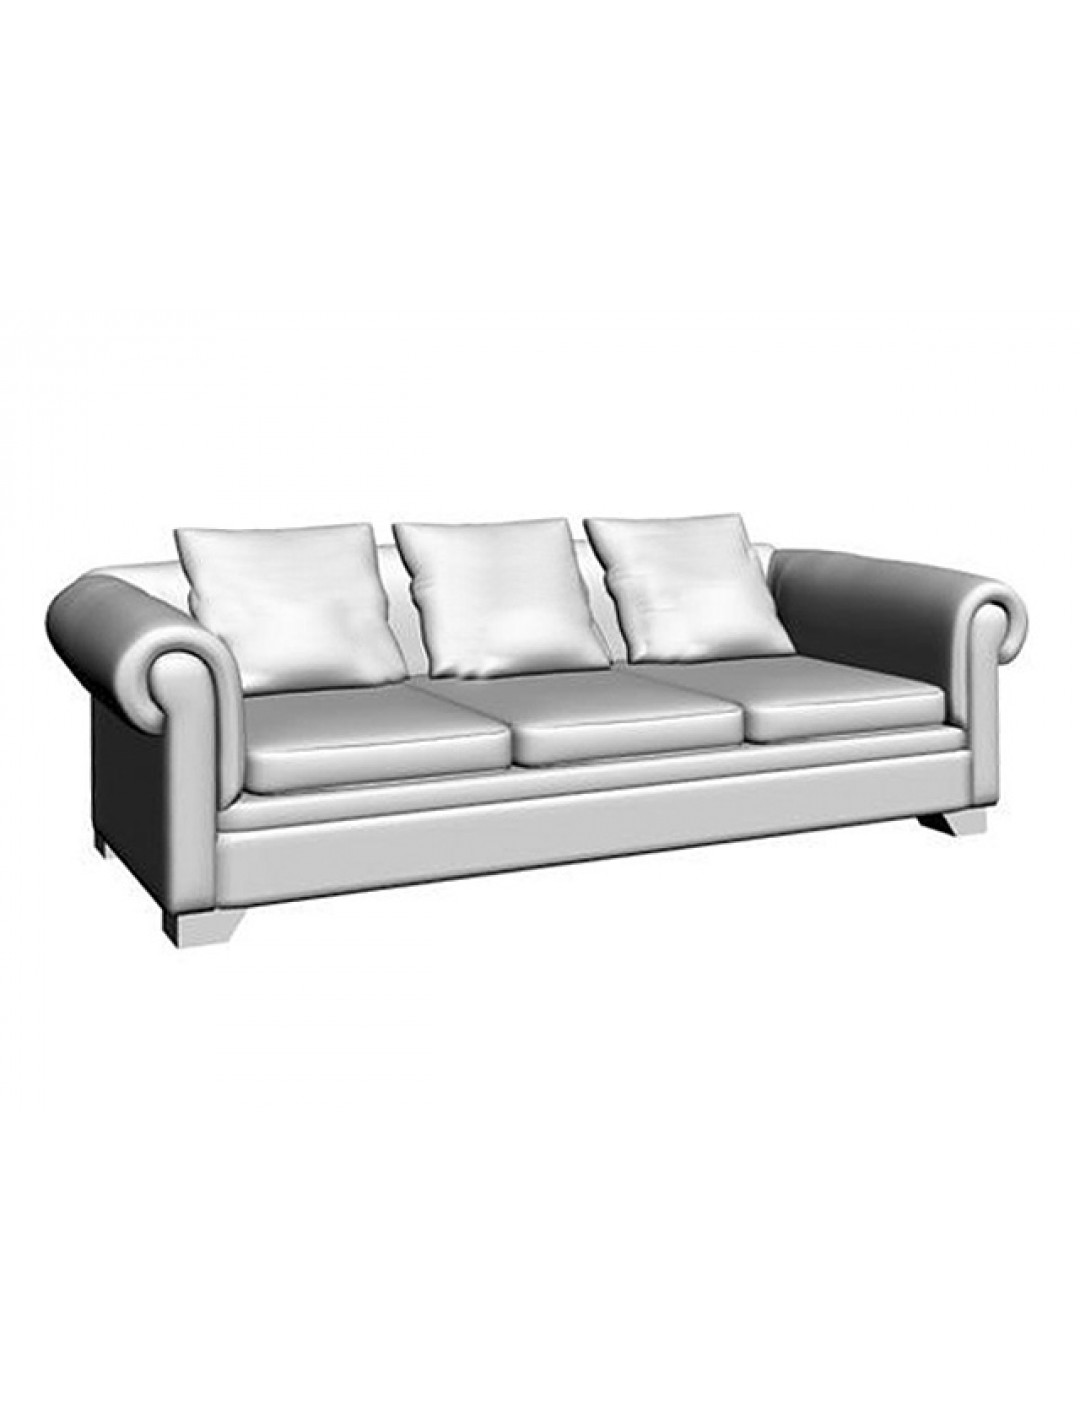 VICTORIA 3-SEATER QUILTED UPHOLSTERY SOFA, THREE 60*60 CUSHIONS INCLUDED, C.O.M.